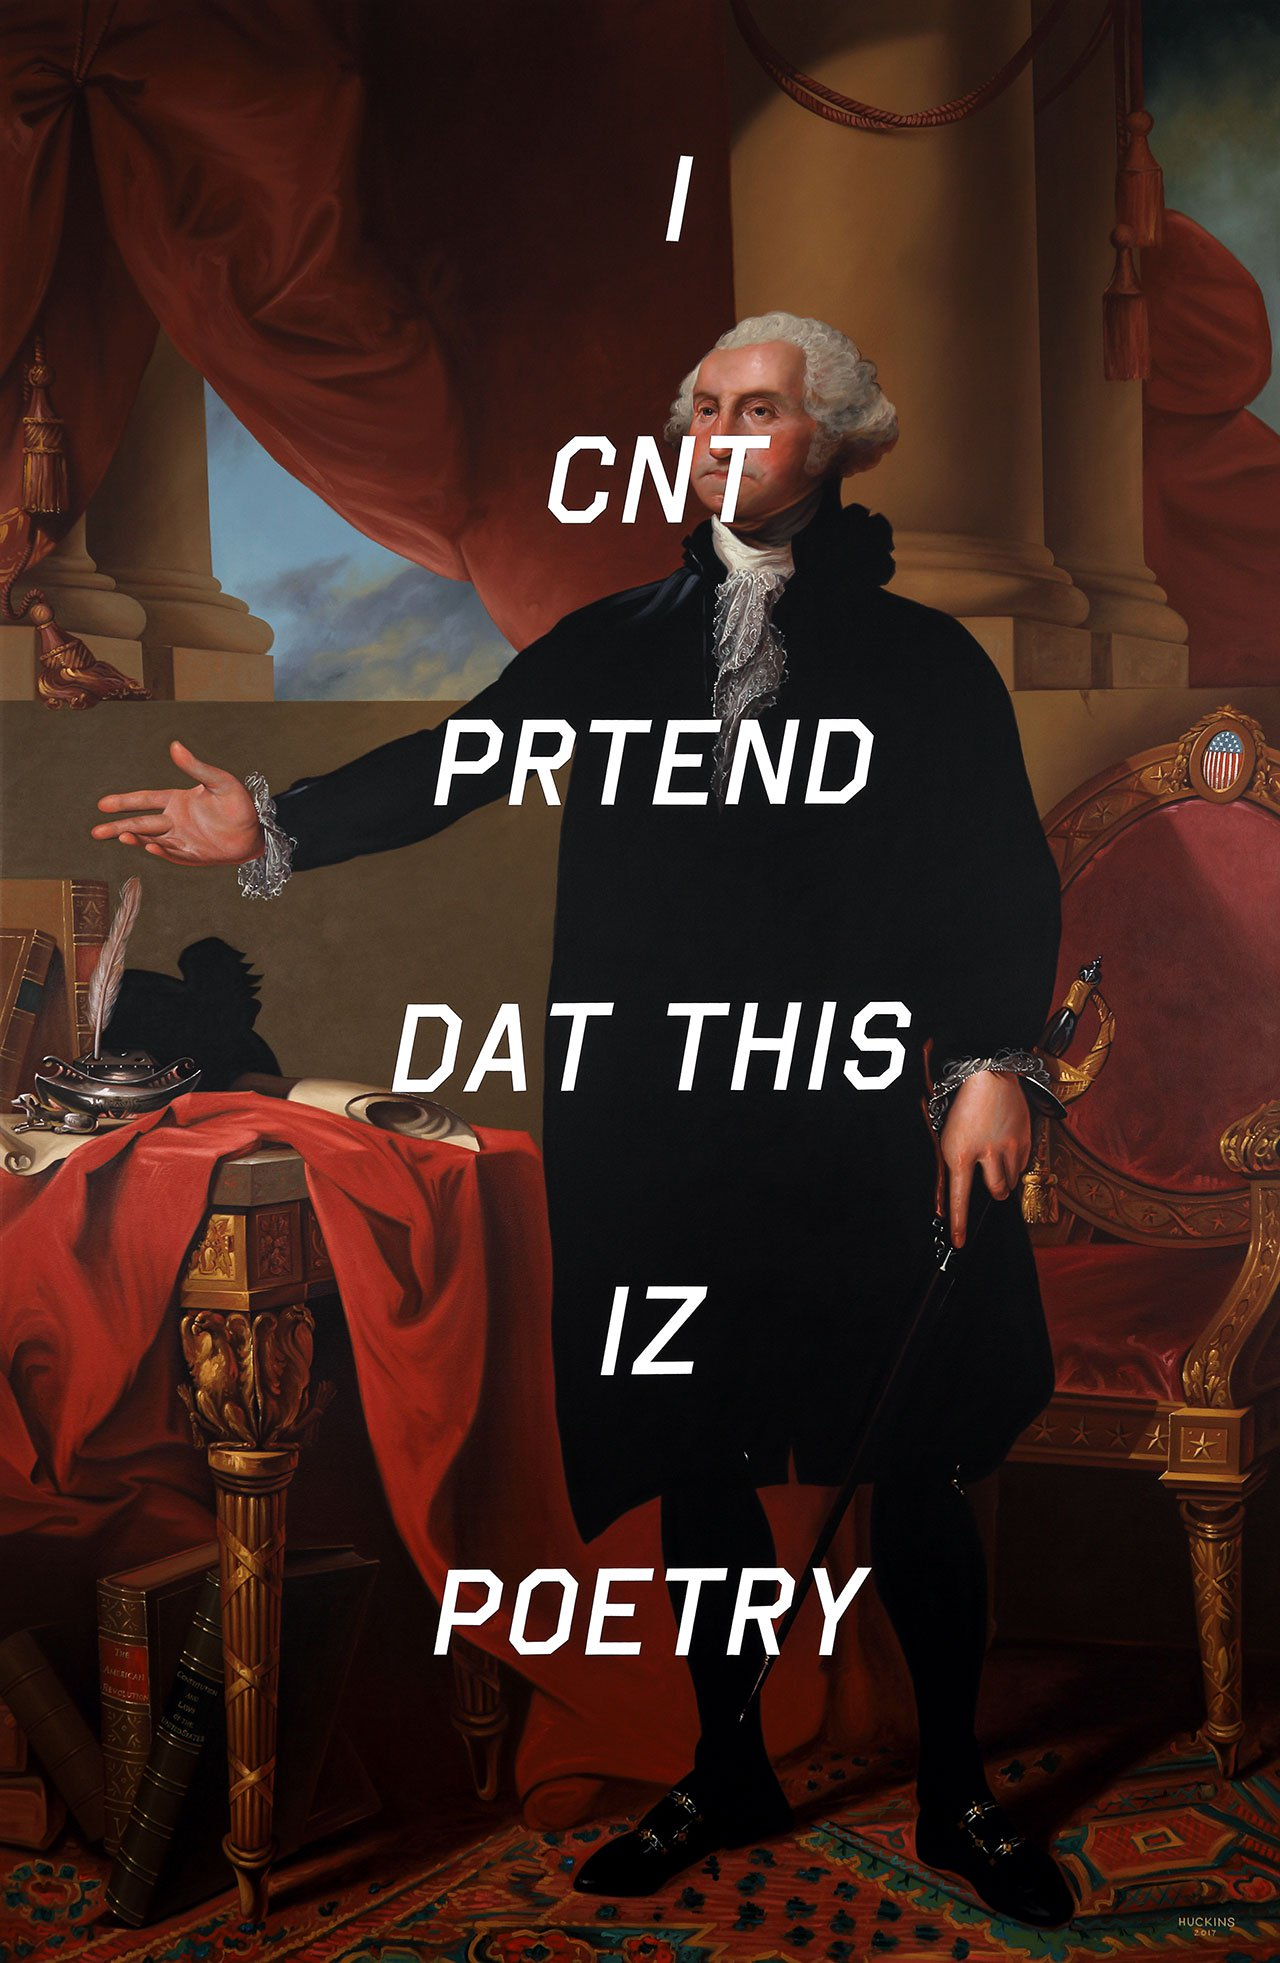 George Washington (The Lansdowne Portrait): I Can't Pretend That This Is Poetry, 2017. Acrylic